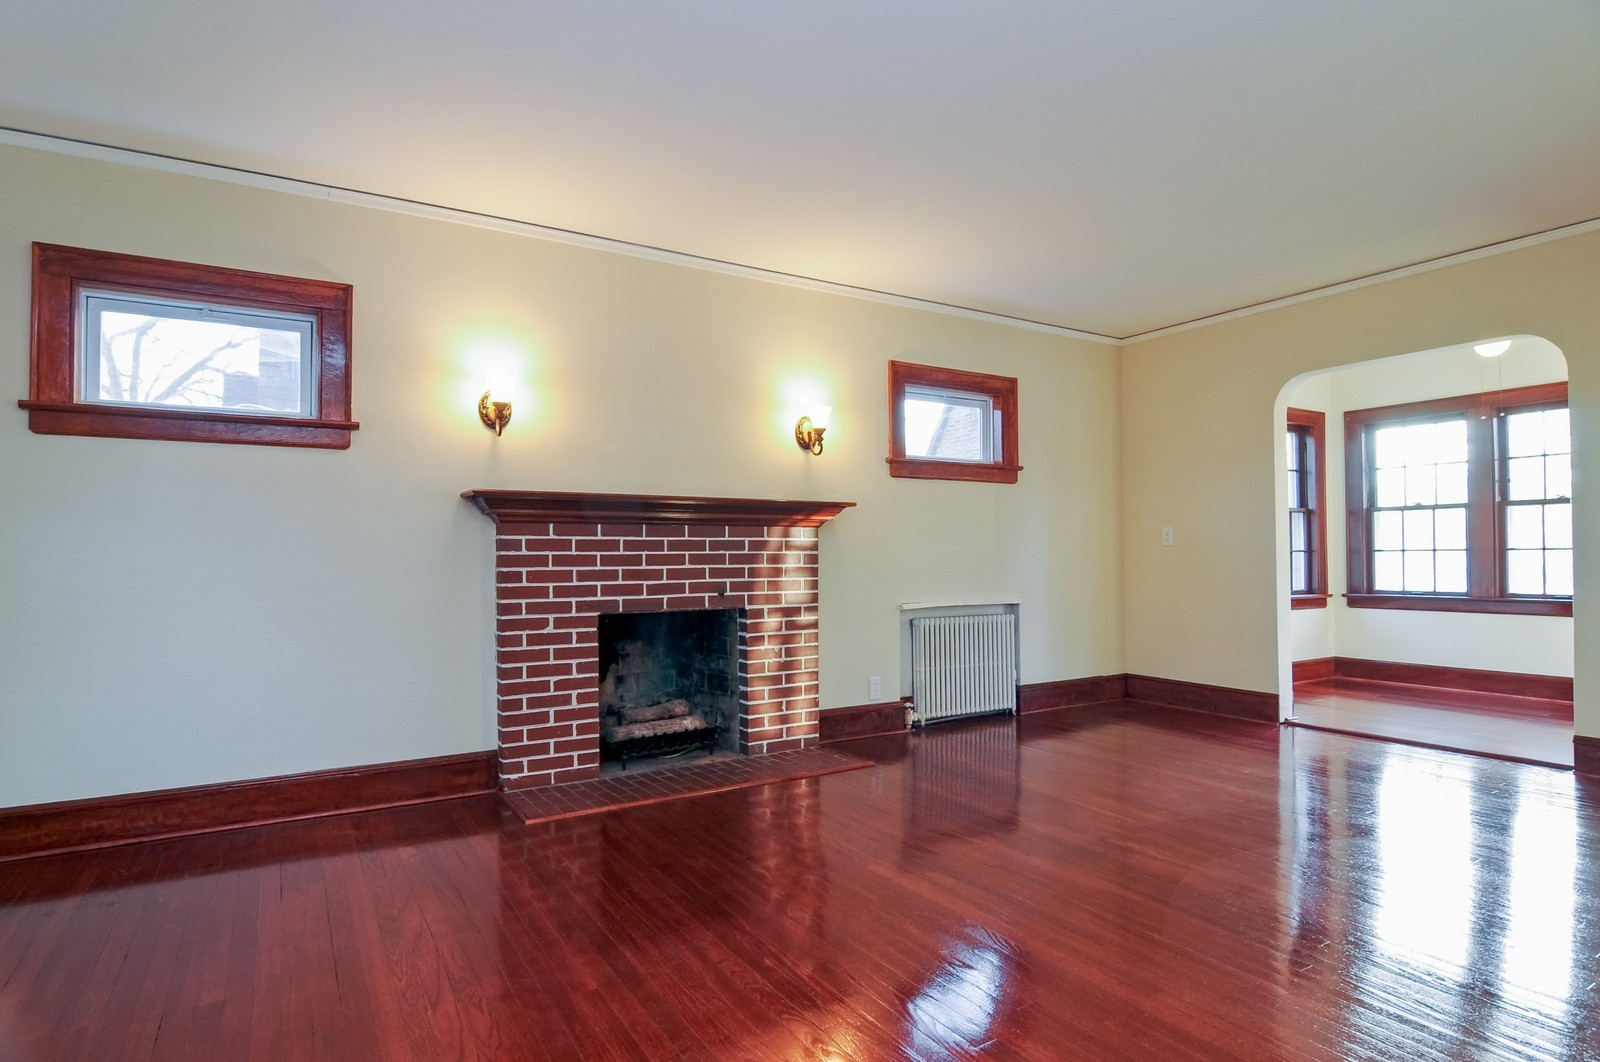 Real Estate Photography - 1516 N Jackson St, Waukegan, IL, 60085 - Living Room